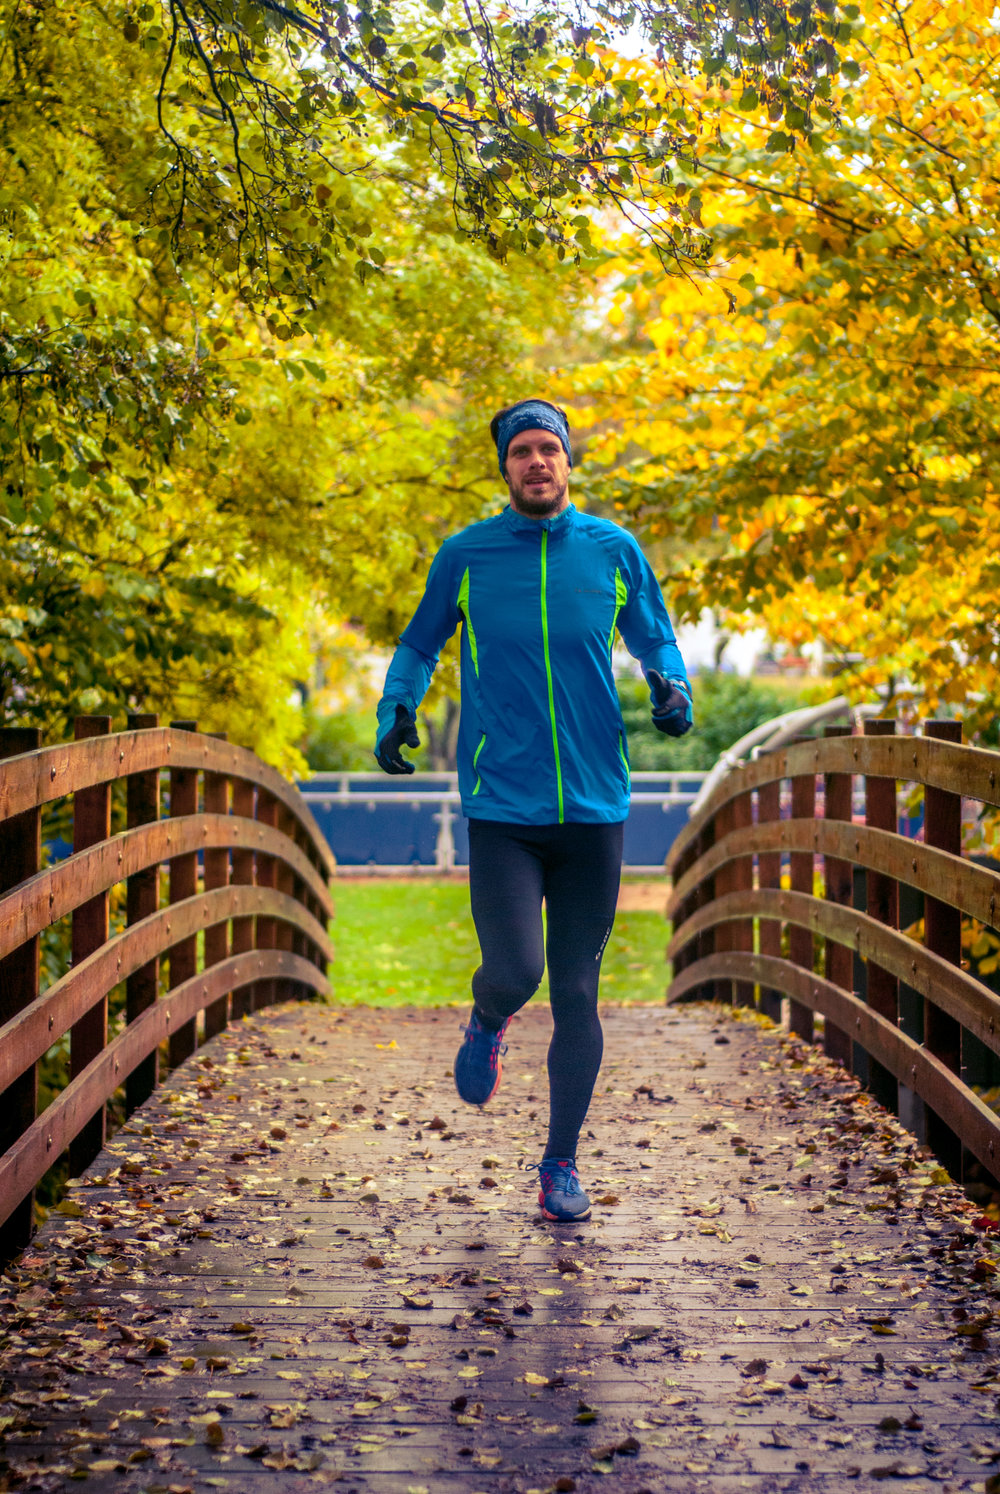 I love running in the fall. Some of the sessions outside during September and October were just spectacular. This is me running at the local park here in Odense.  Photo: Amalie. Nikon D200